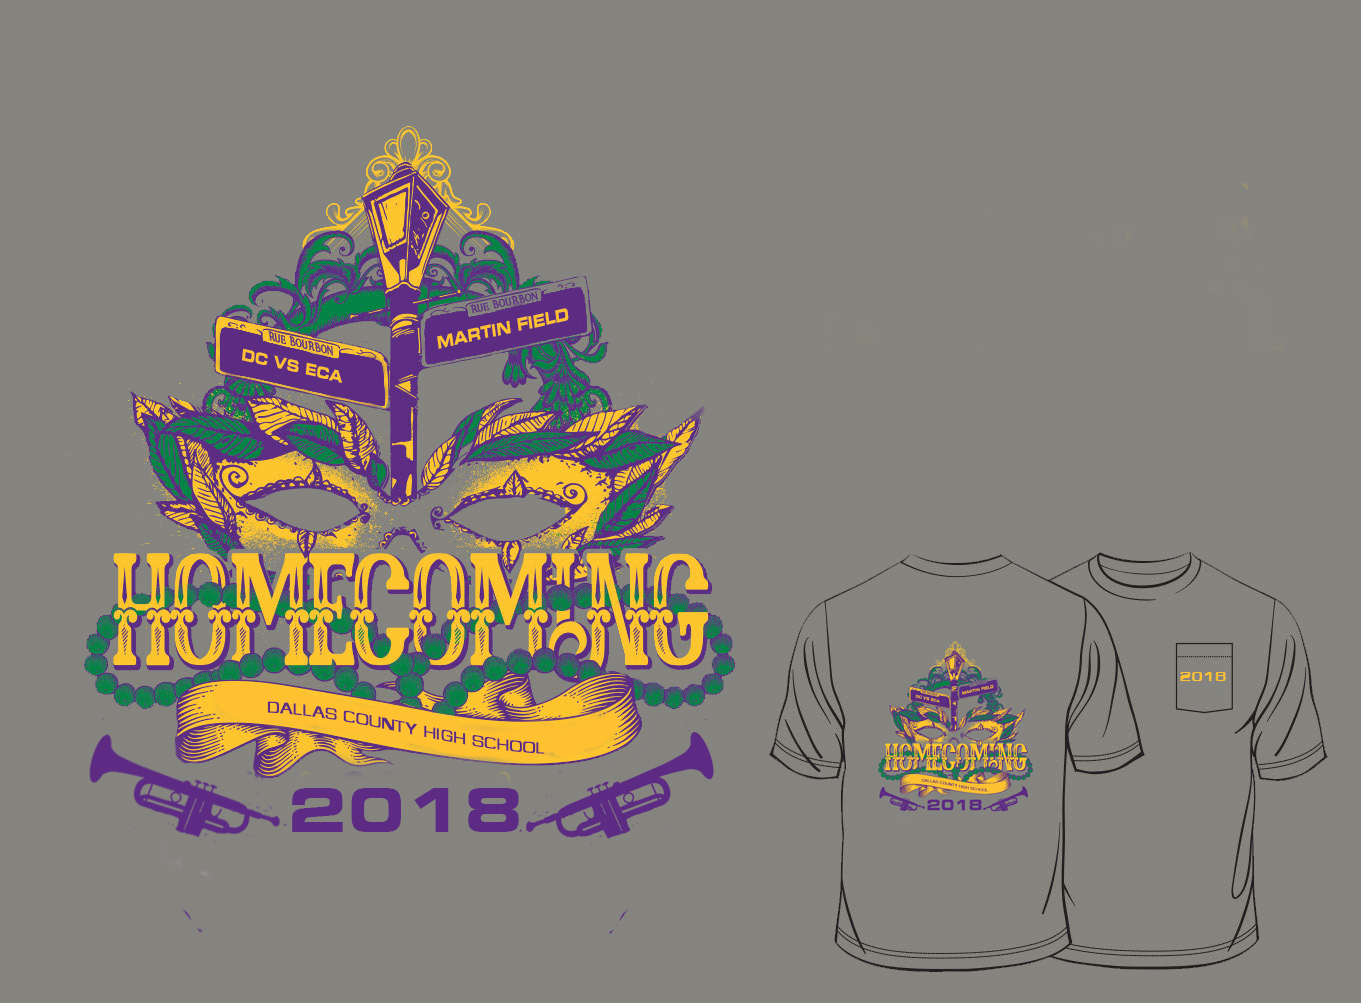 Homecoming T Shirts On Sale Dallas County High School